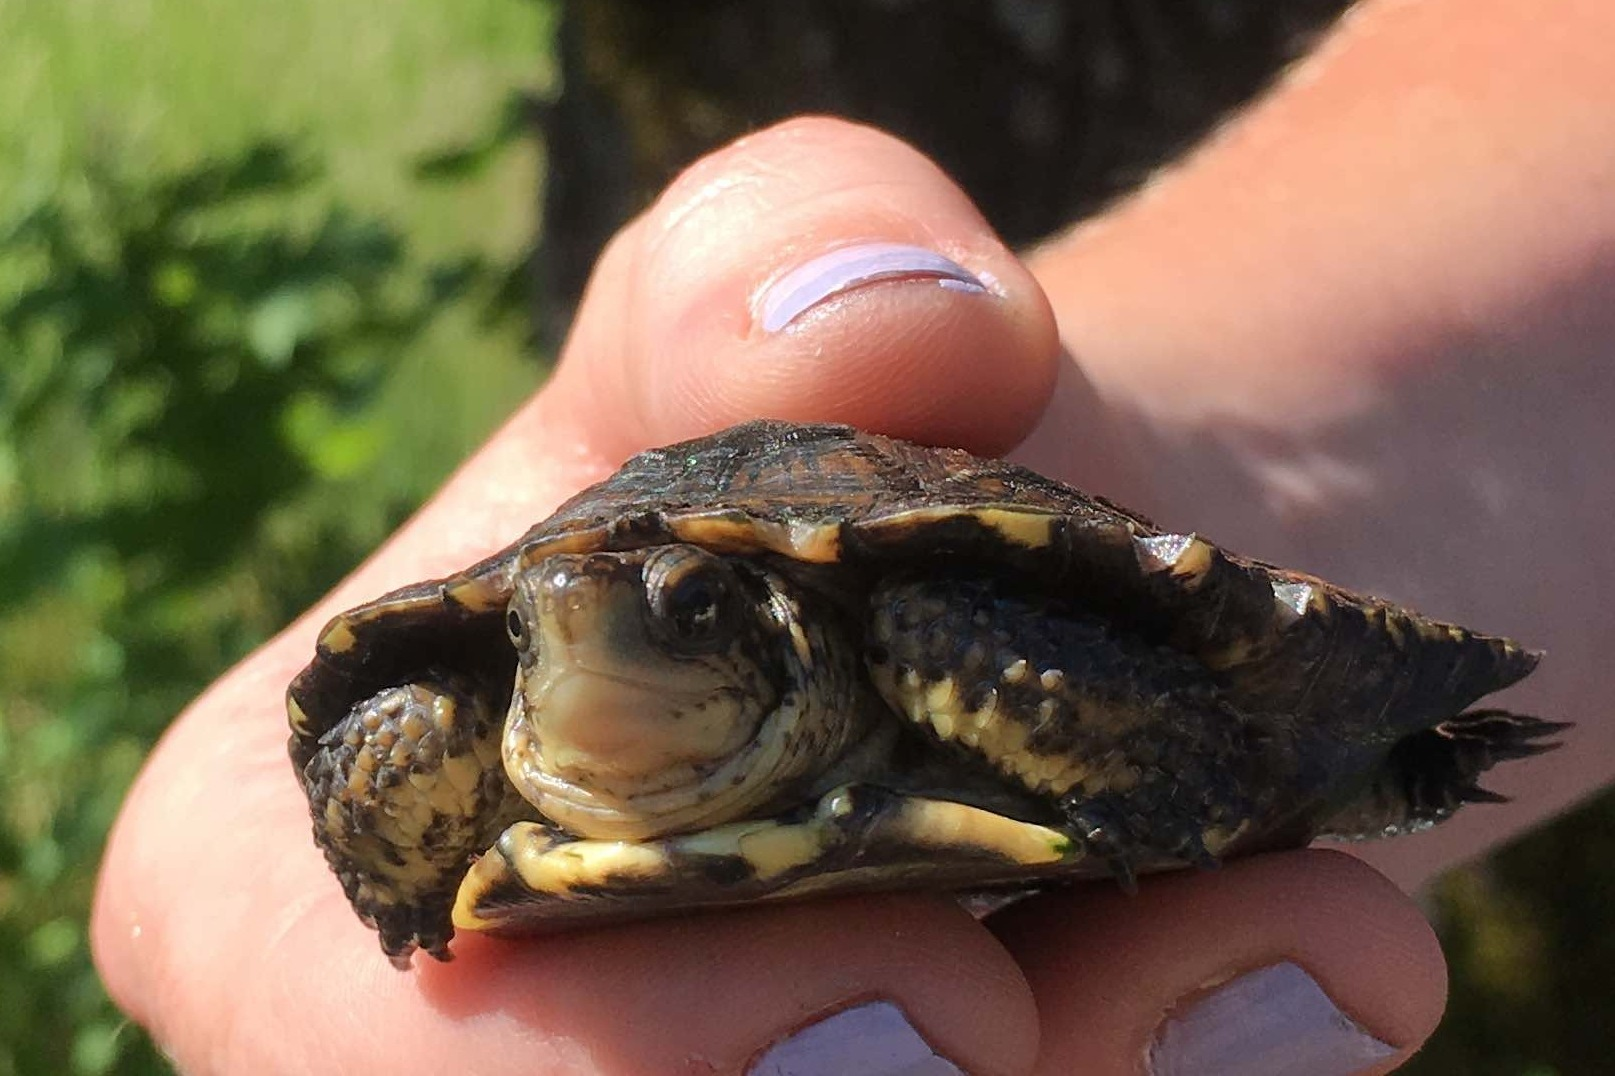 Collaboration Provides Sanctuary for Endangered Gorge Turtles